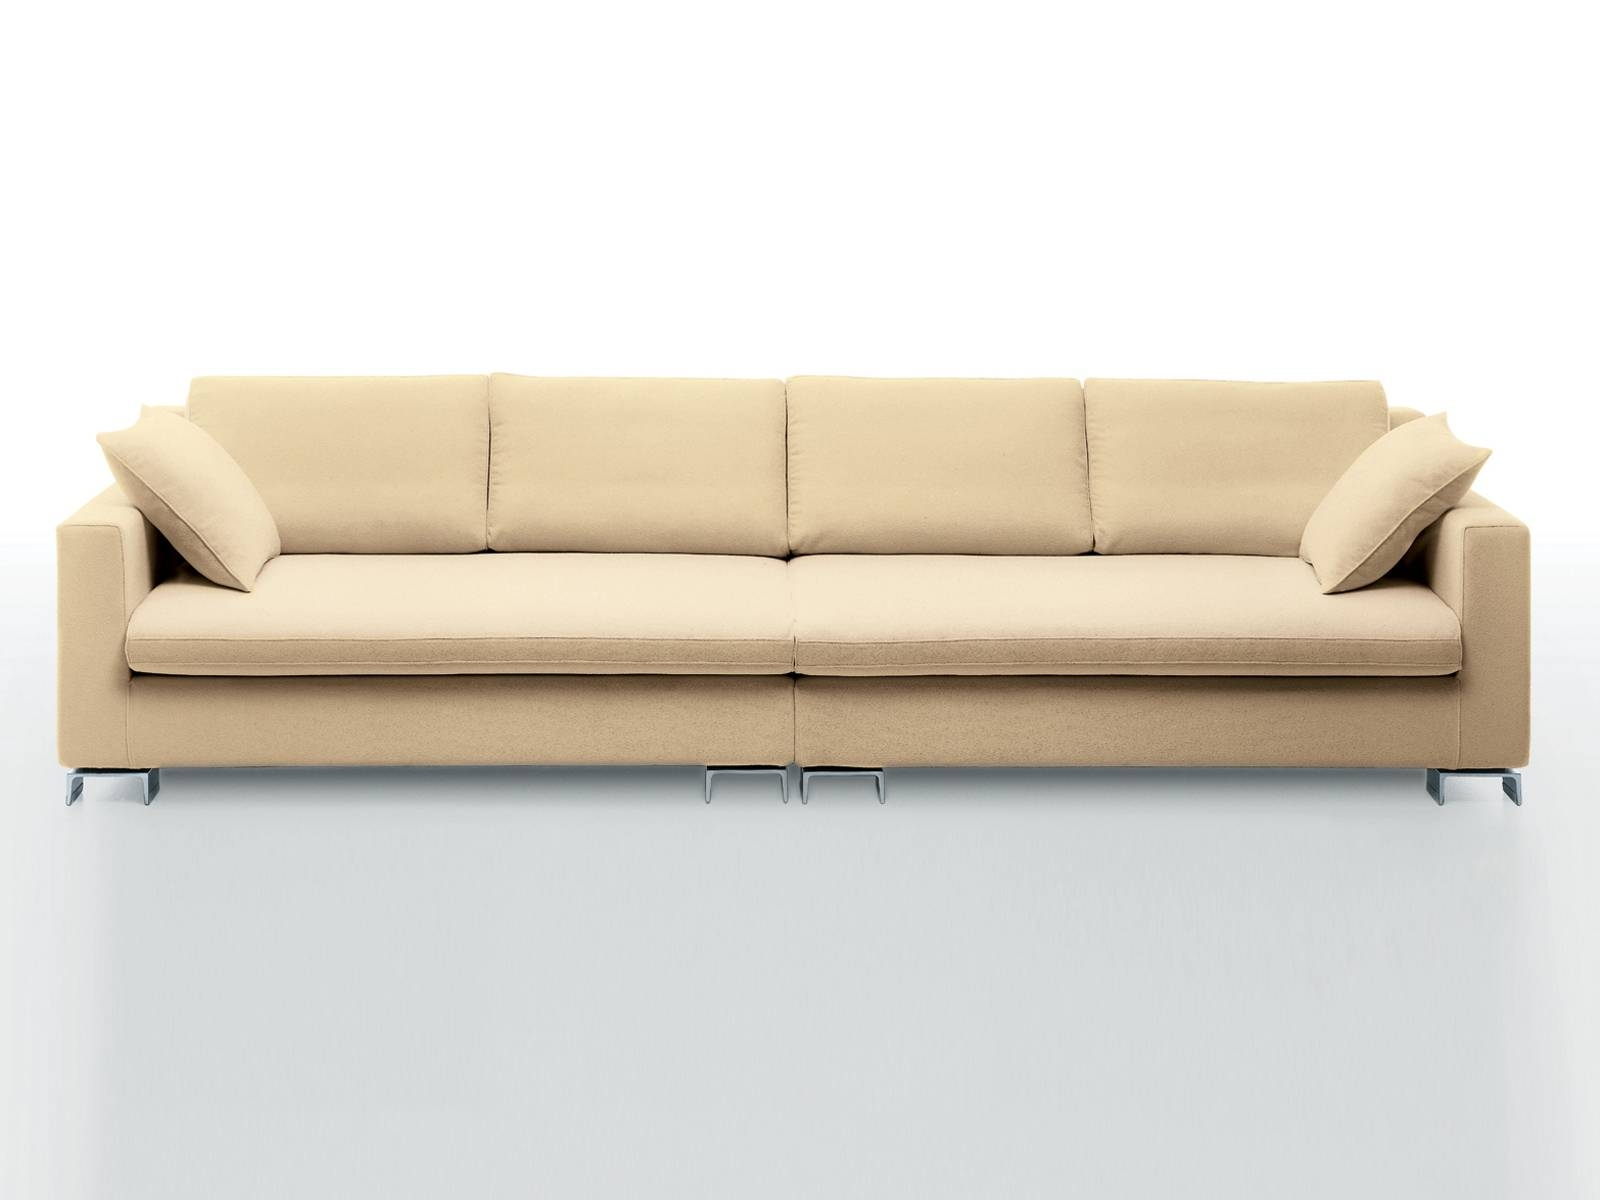 I 4 Mariani Sofas | Archiproducts in Four Seat Sofas (Image 22 of 30)